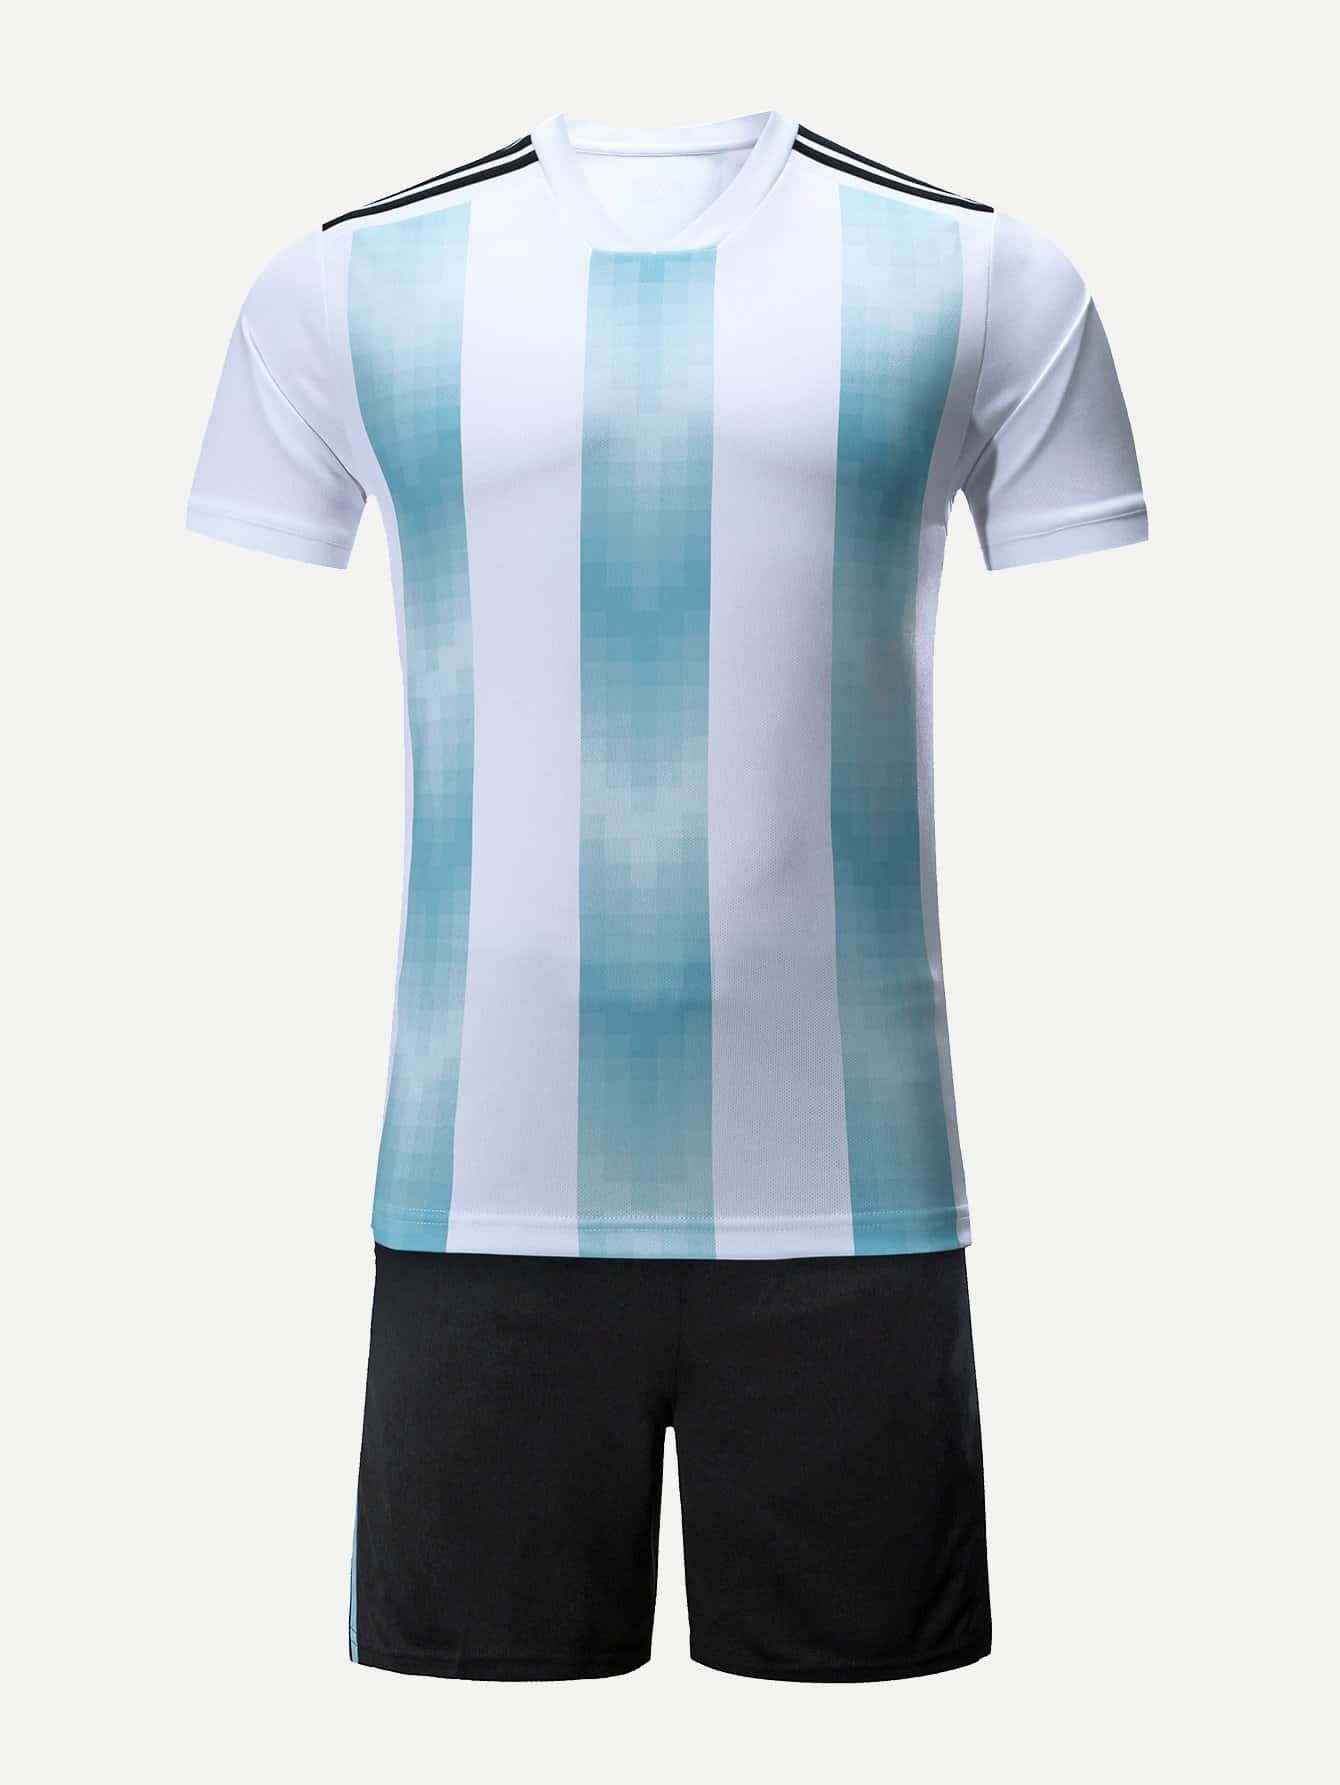 Men Argentina Footbal Host Team T-Shirt With Shorts soccer shirt uniforms 3a 15 16 15 16 argentina home away football shirt